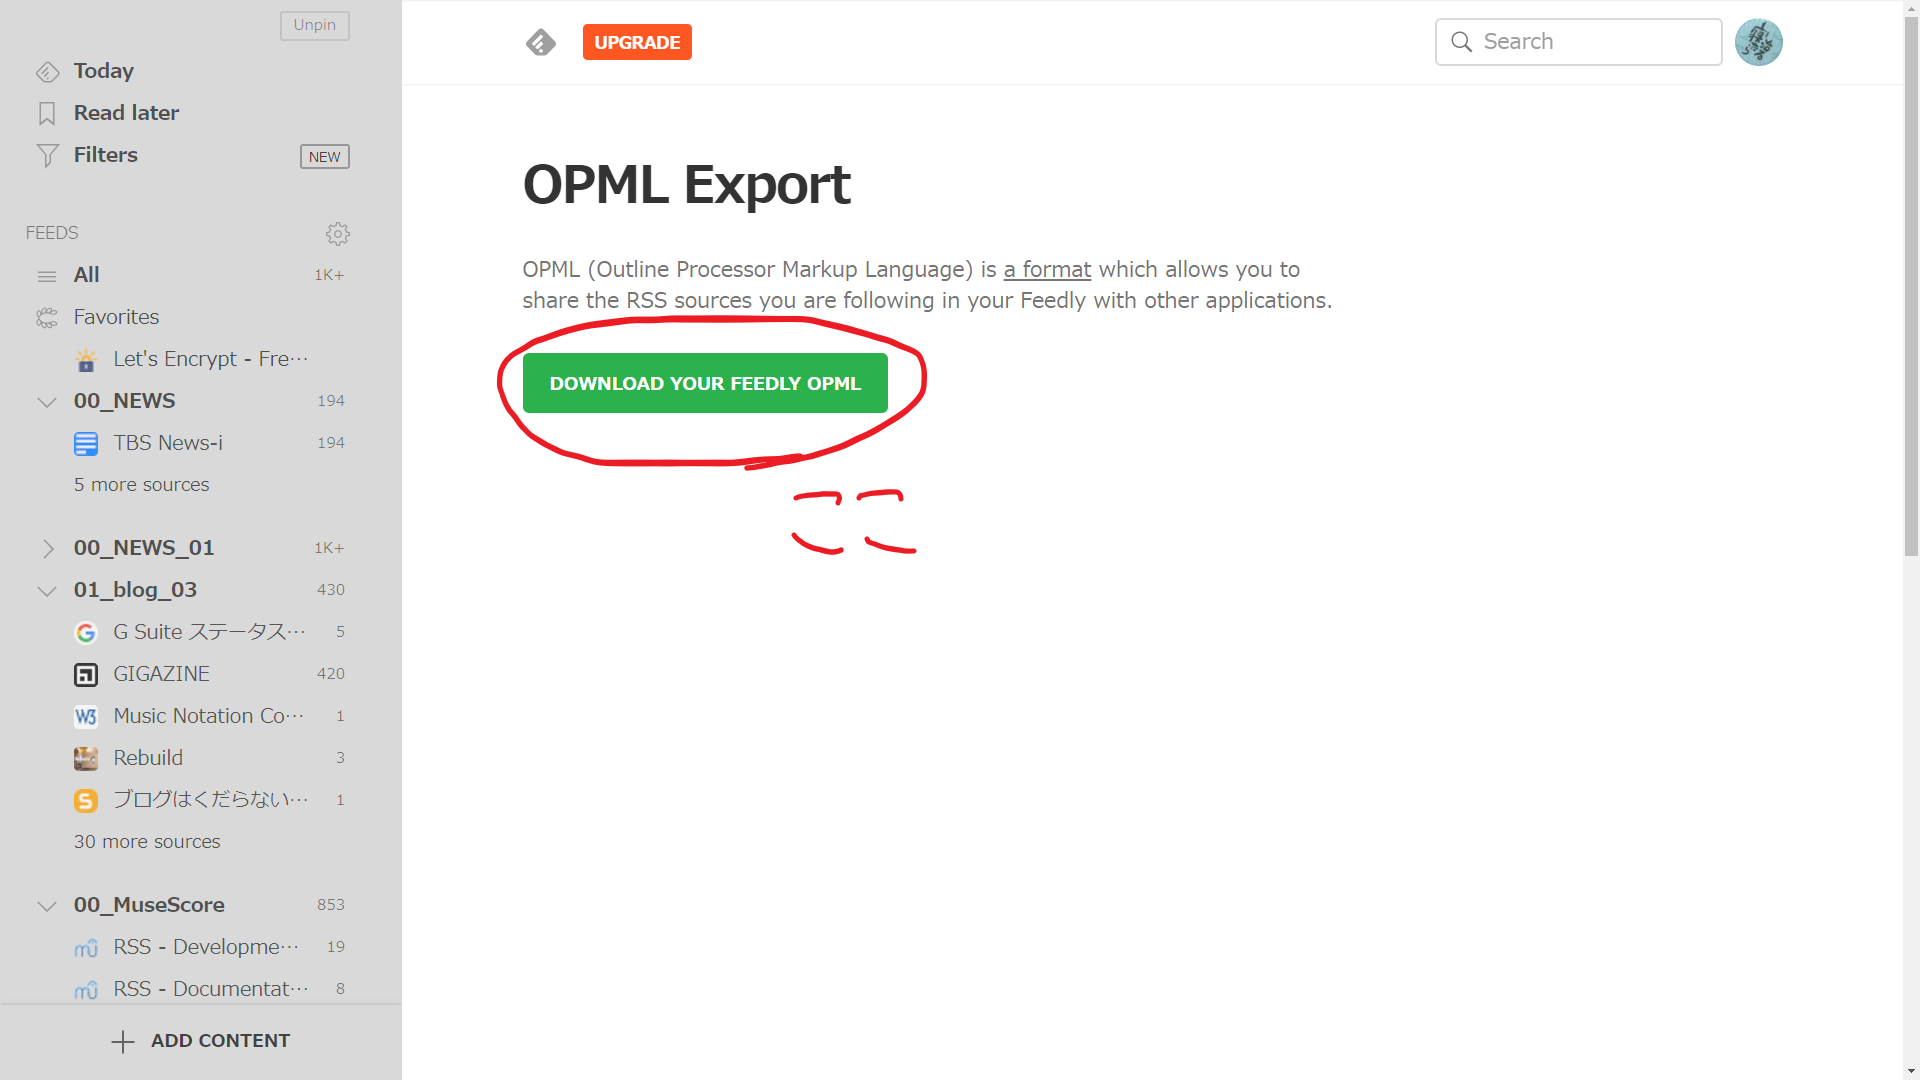 Feedly_OPML_export_Download_button.png